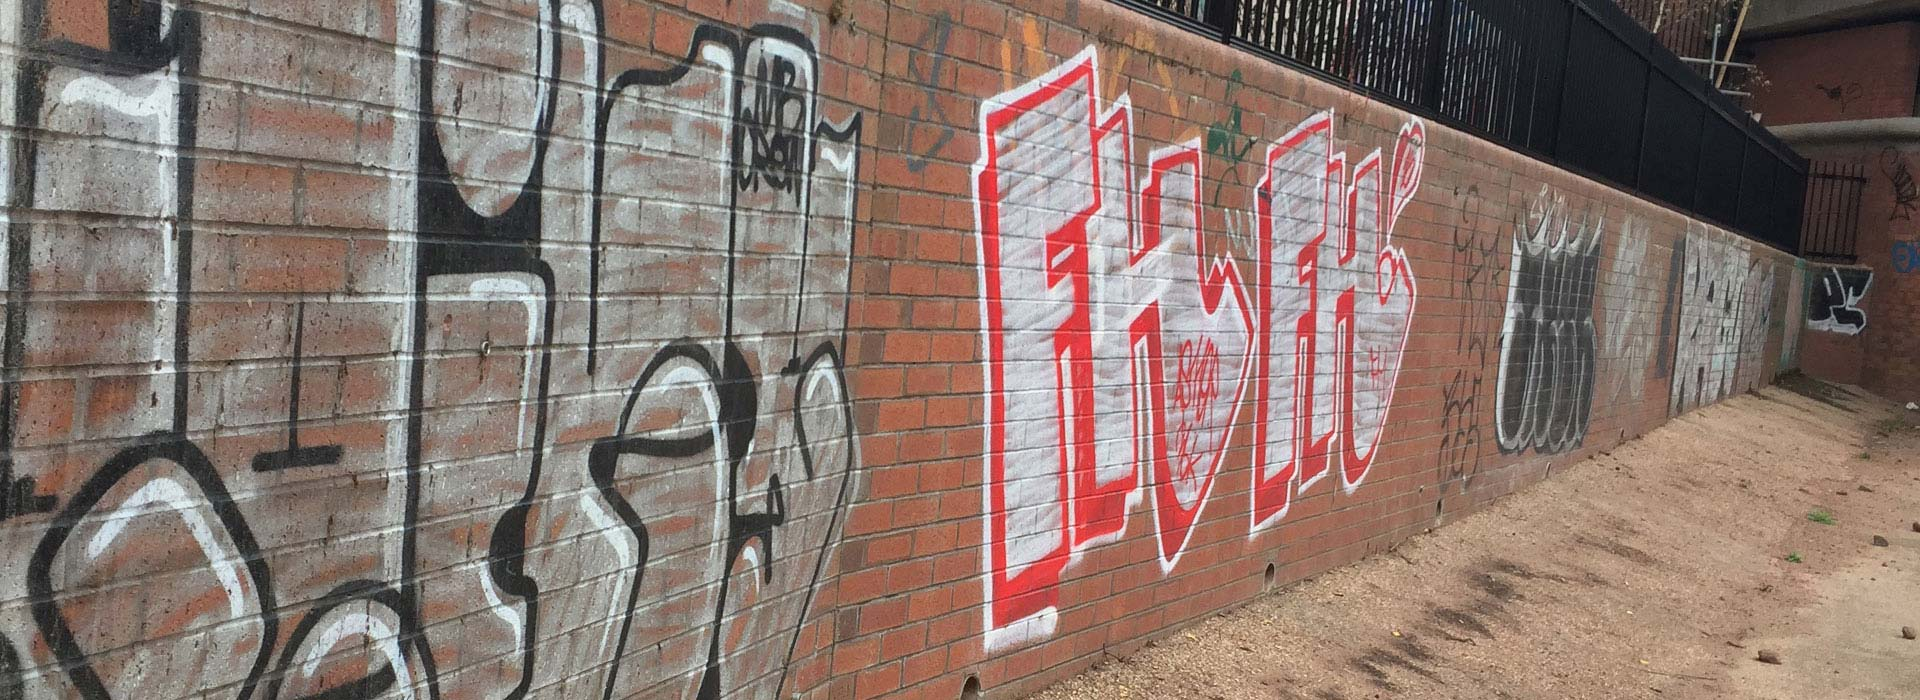 Graffiti Removal Services in Manchester and the North West - HCS Cleaning Services